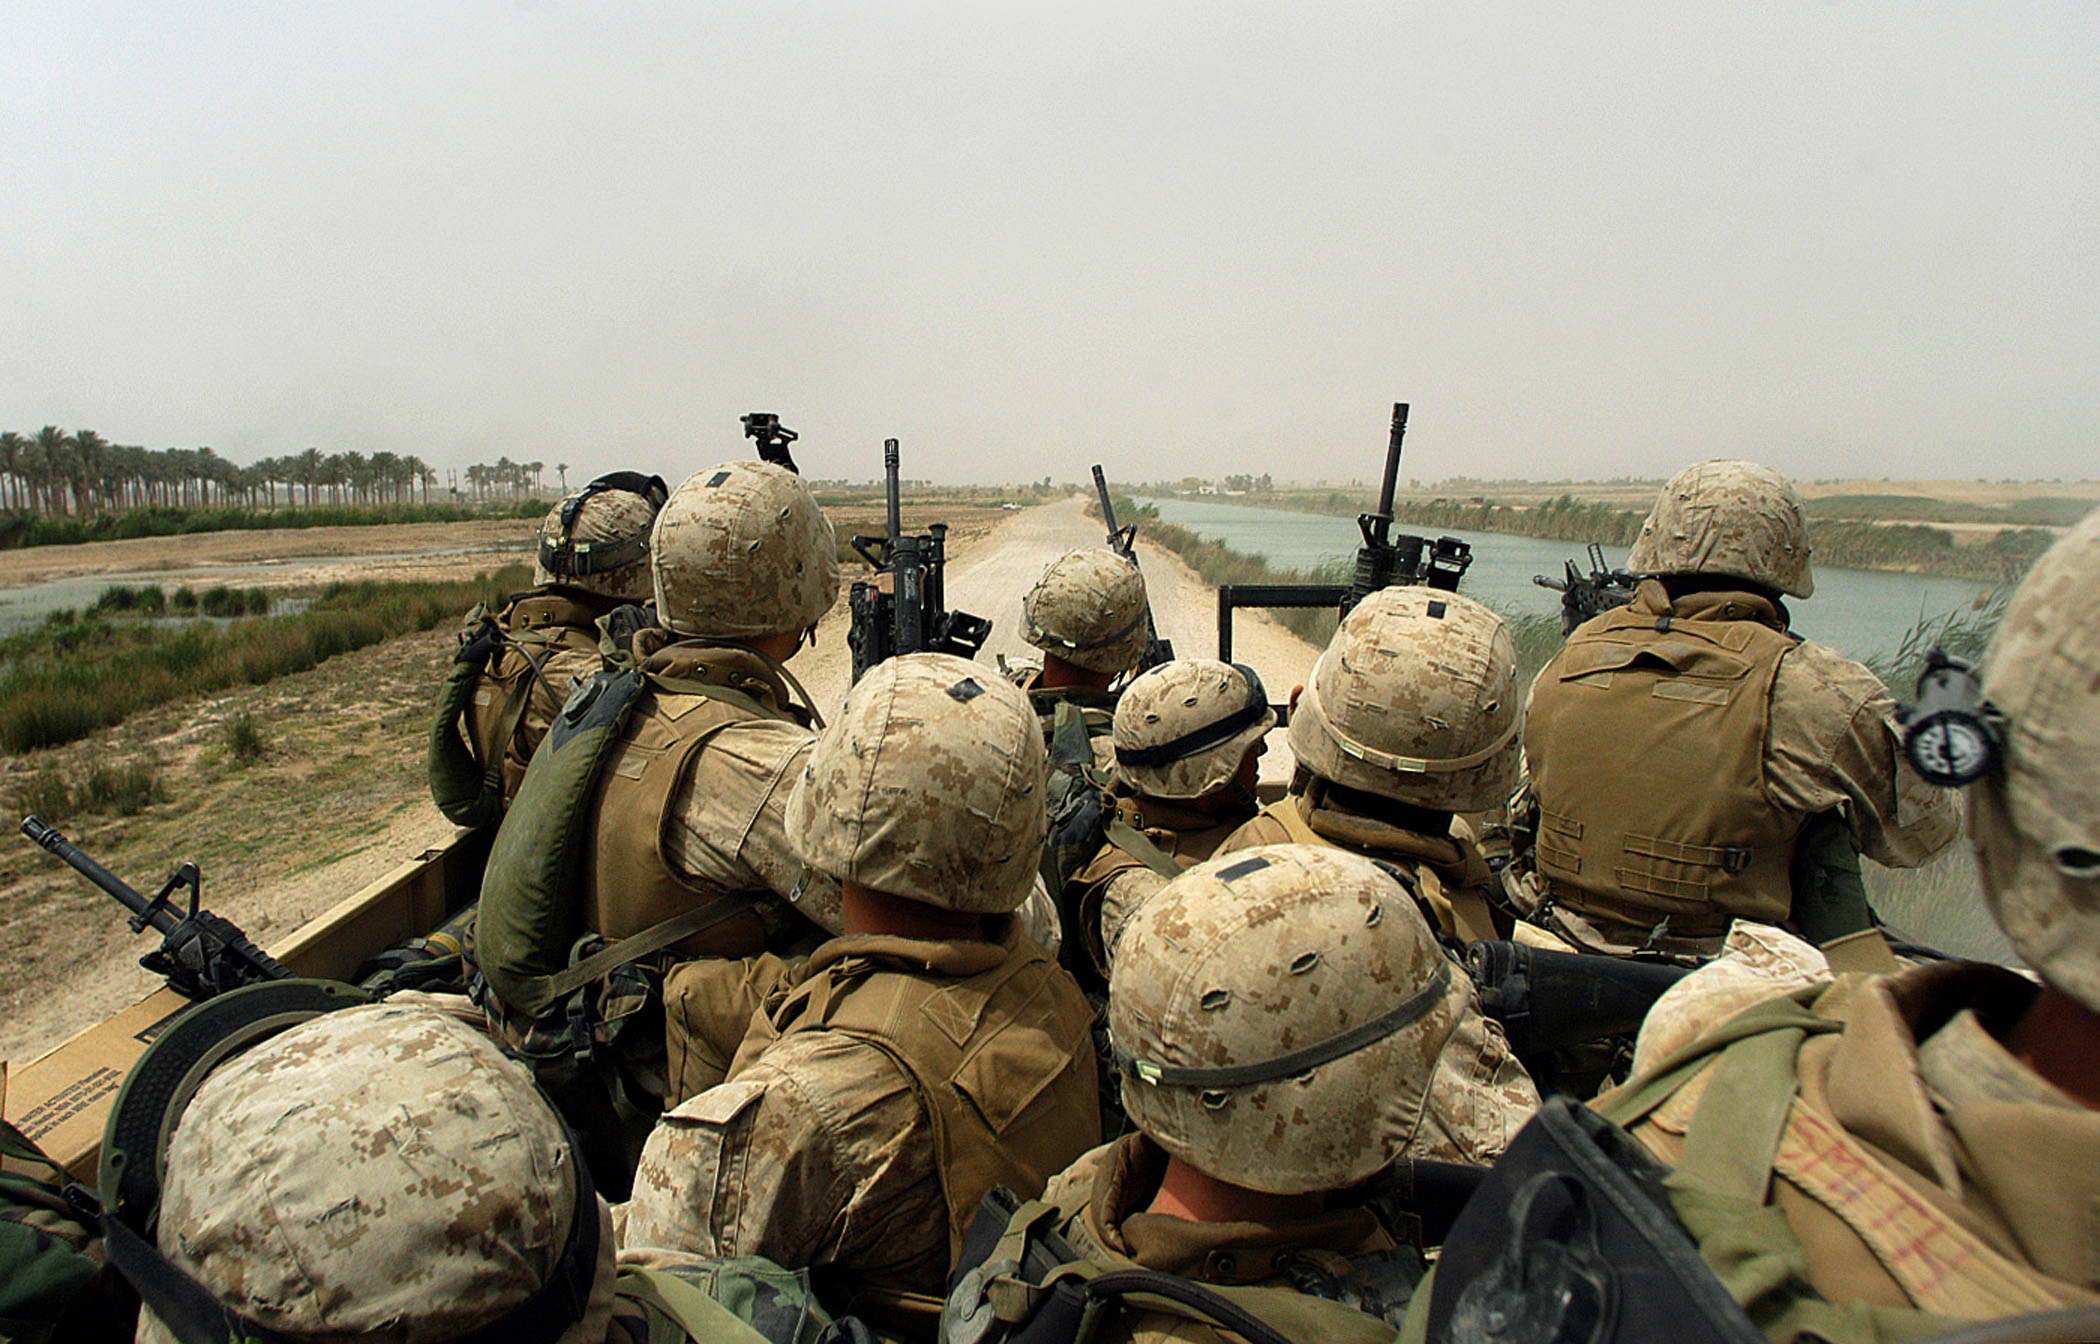 A squad of U.S. marines rides a 7-ton truck after being ambushed several times by insurgents while on a 'movement-to-contact mission in order to flush out insurgents operating in the Fallujah area  south of Fallujah on Thursday, April 15, 2004 in Iraq.  The marines are part of the 3rd Battalion, 4th marine regiment, which saw heavy combat at the beginning of the war last year, and is now back in Iraq embroiled in intense fighting with the resistance.  Today, the men of the 3rd Battalion were ambushed half a dozen times while they patrolled the palm groves and wheat fields around Fallujah, and the marines killed at least 10 insurgents, and suffered only minor injuries.